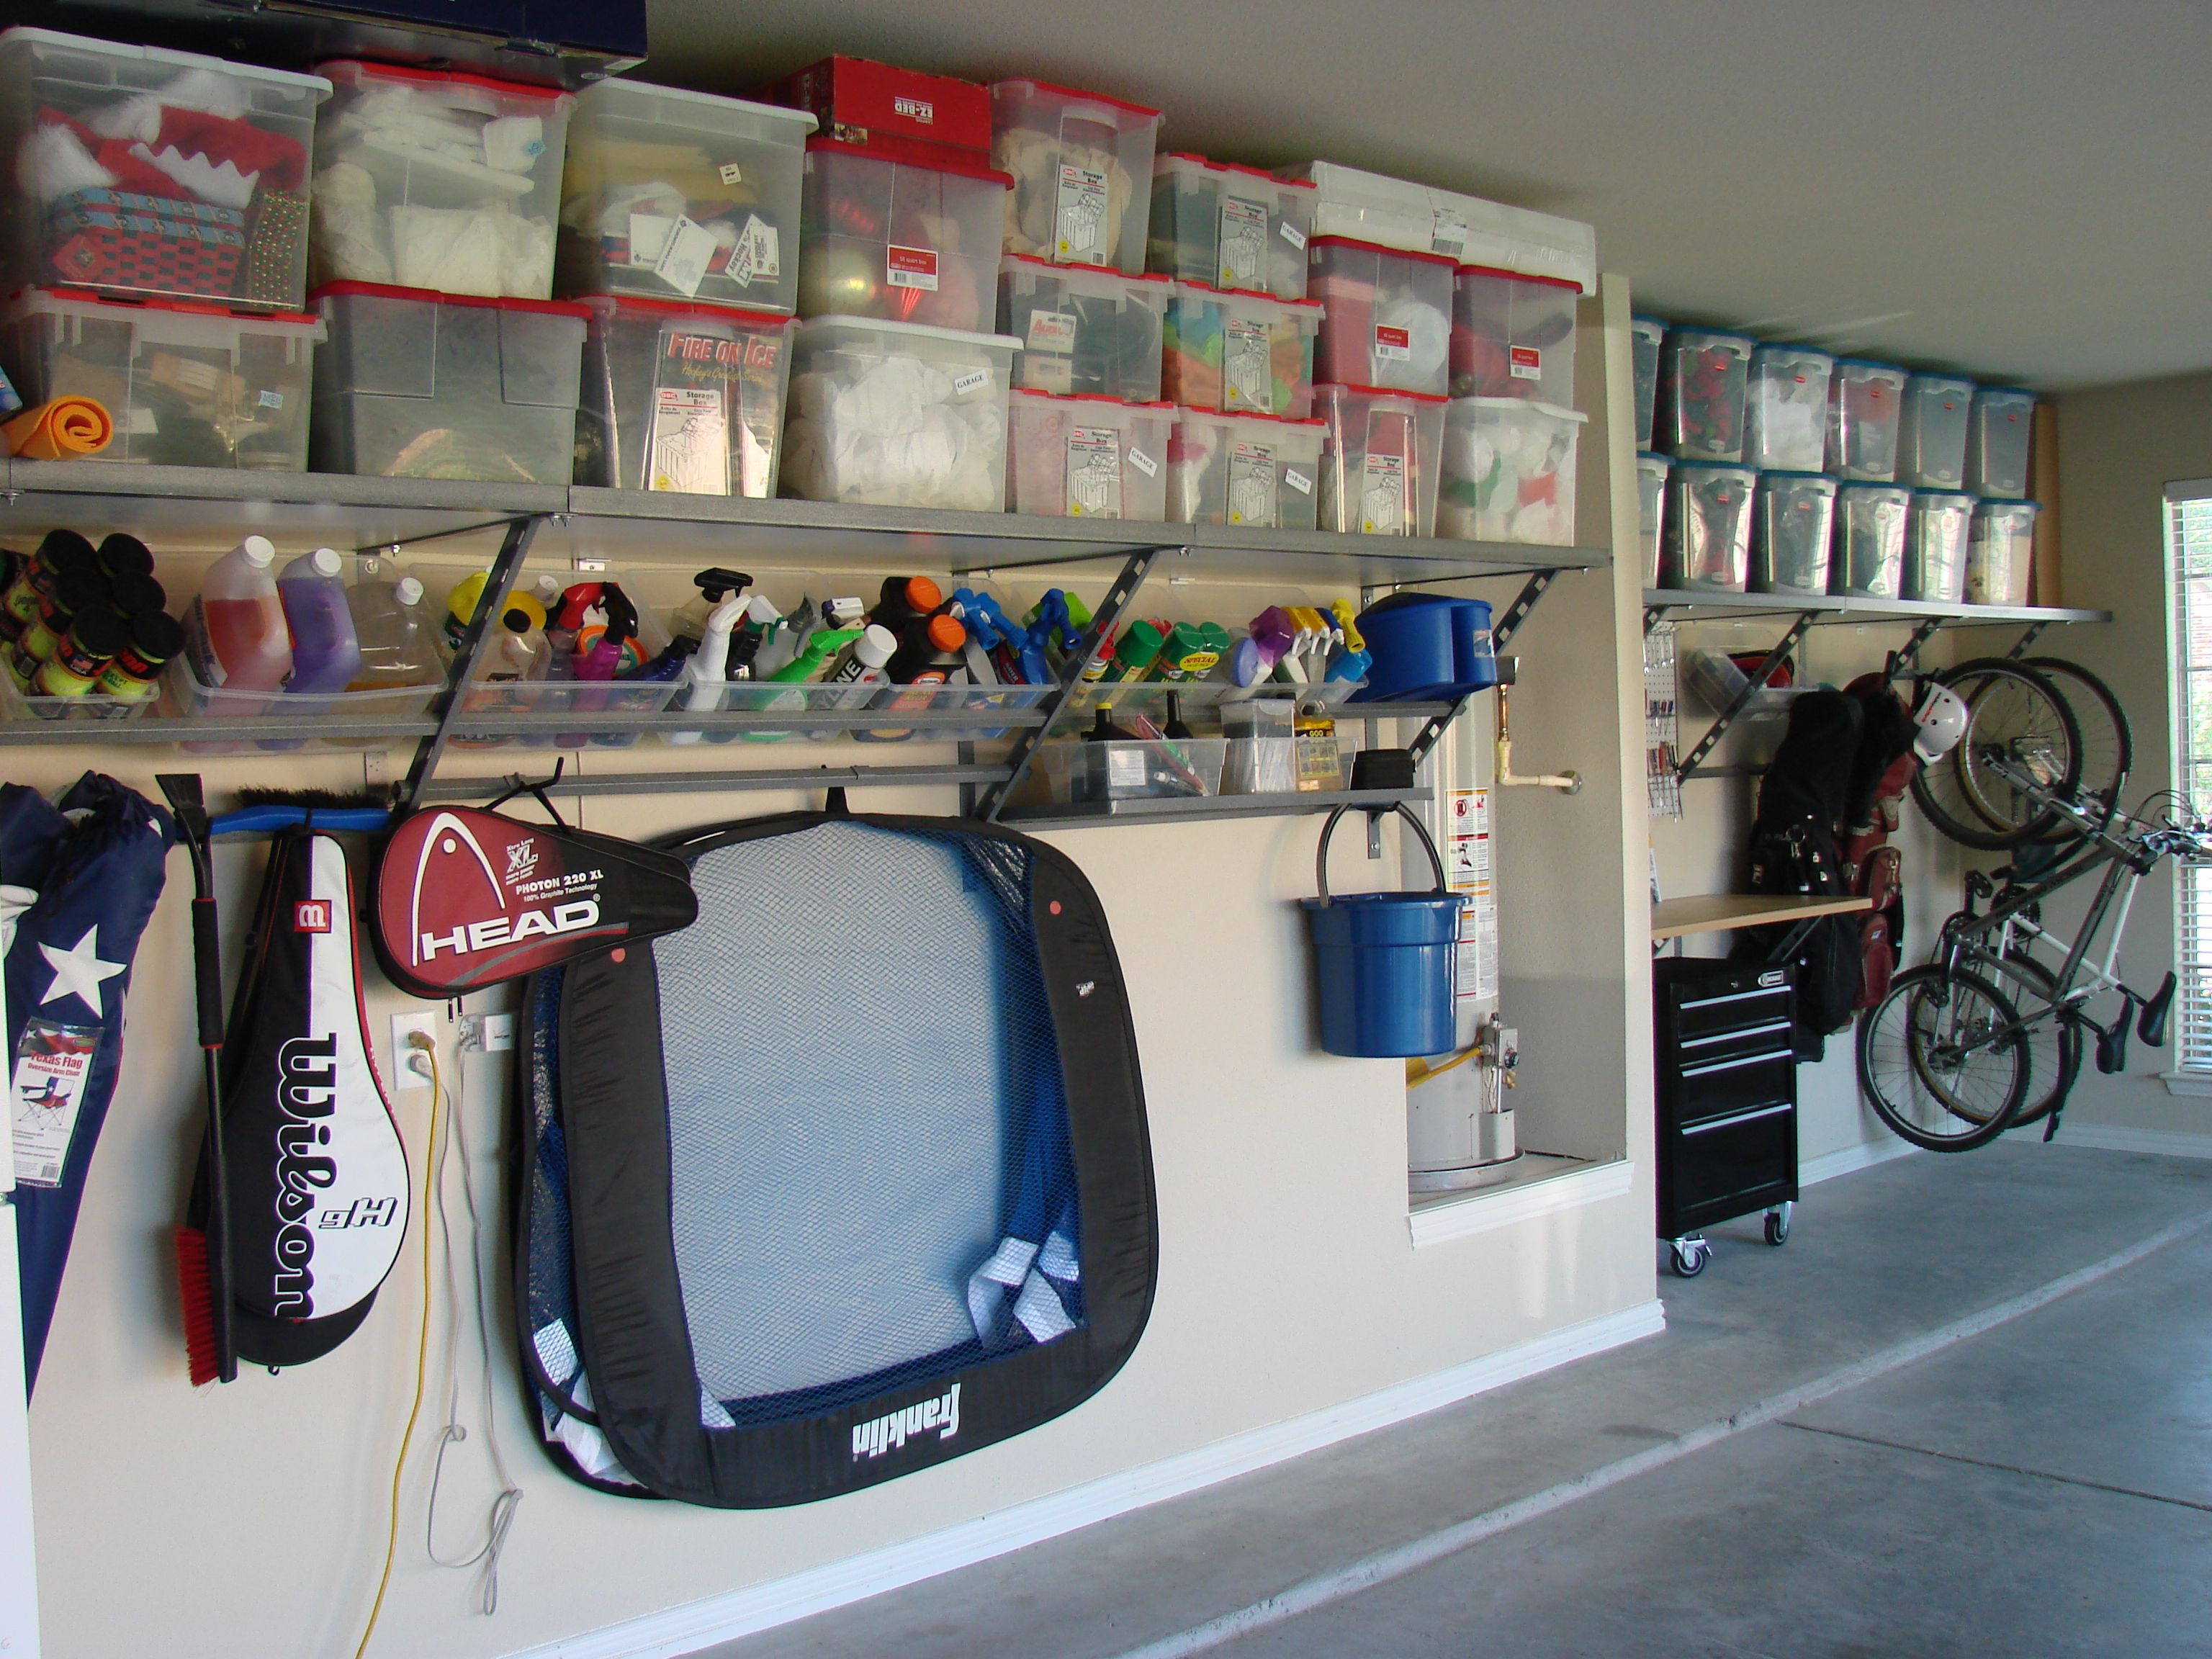 Garage organization tips new home designs the best garage - Garage Ideas Storage Fixtures Layouts And Remodels Amazing Wall Mount Garage Organization Ideas With Floating Rack Garage Storage For Space Saving Garage